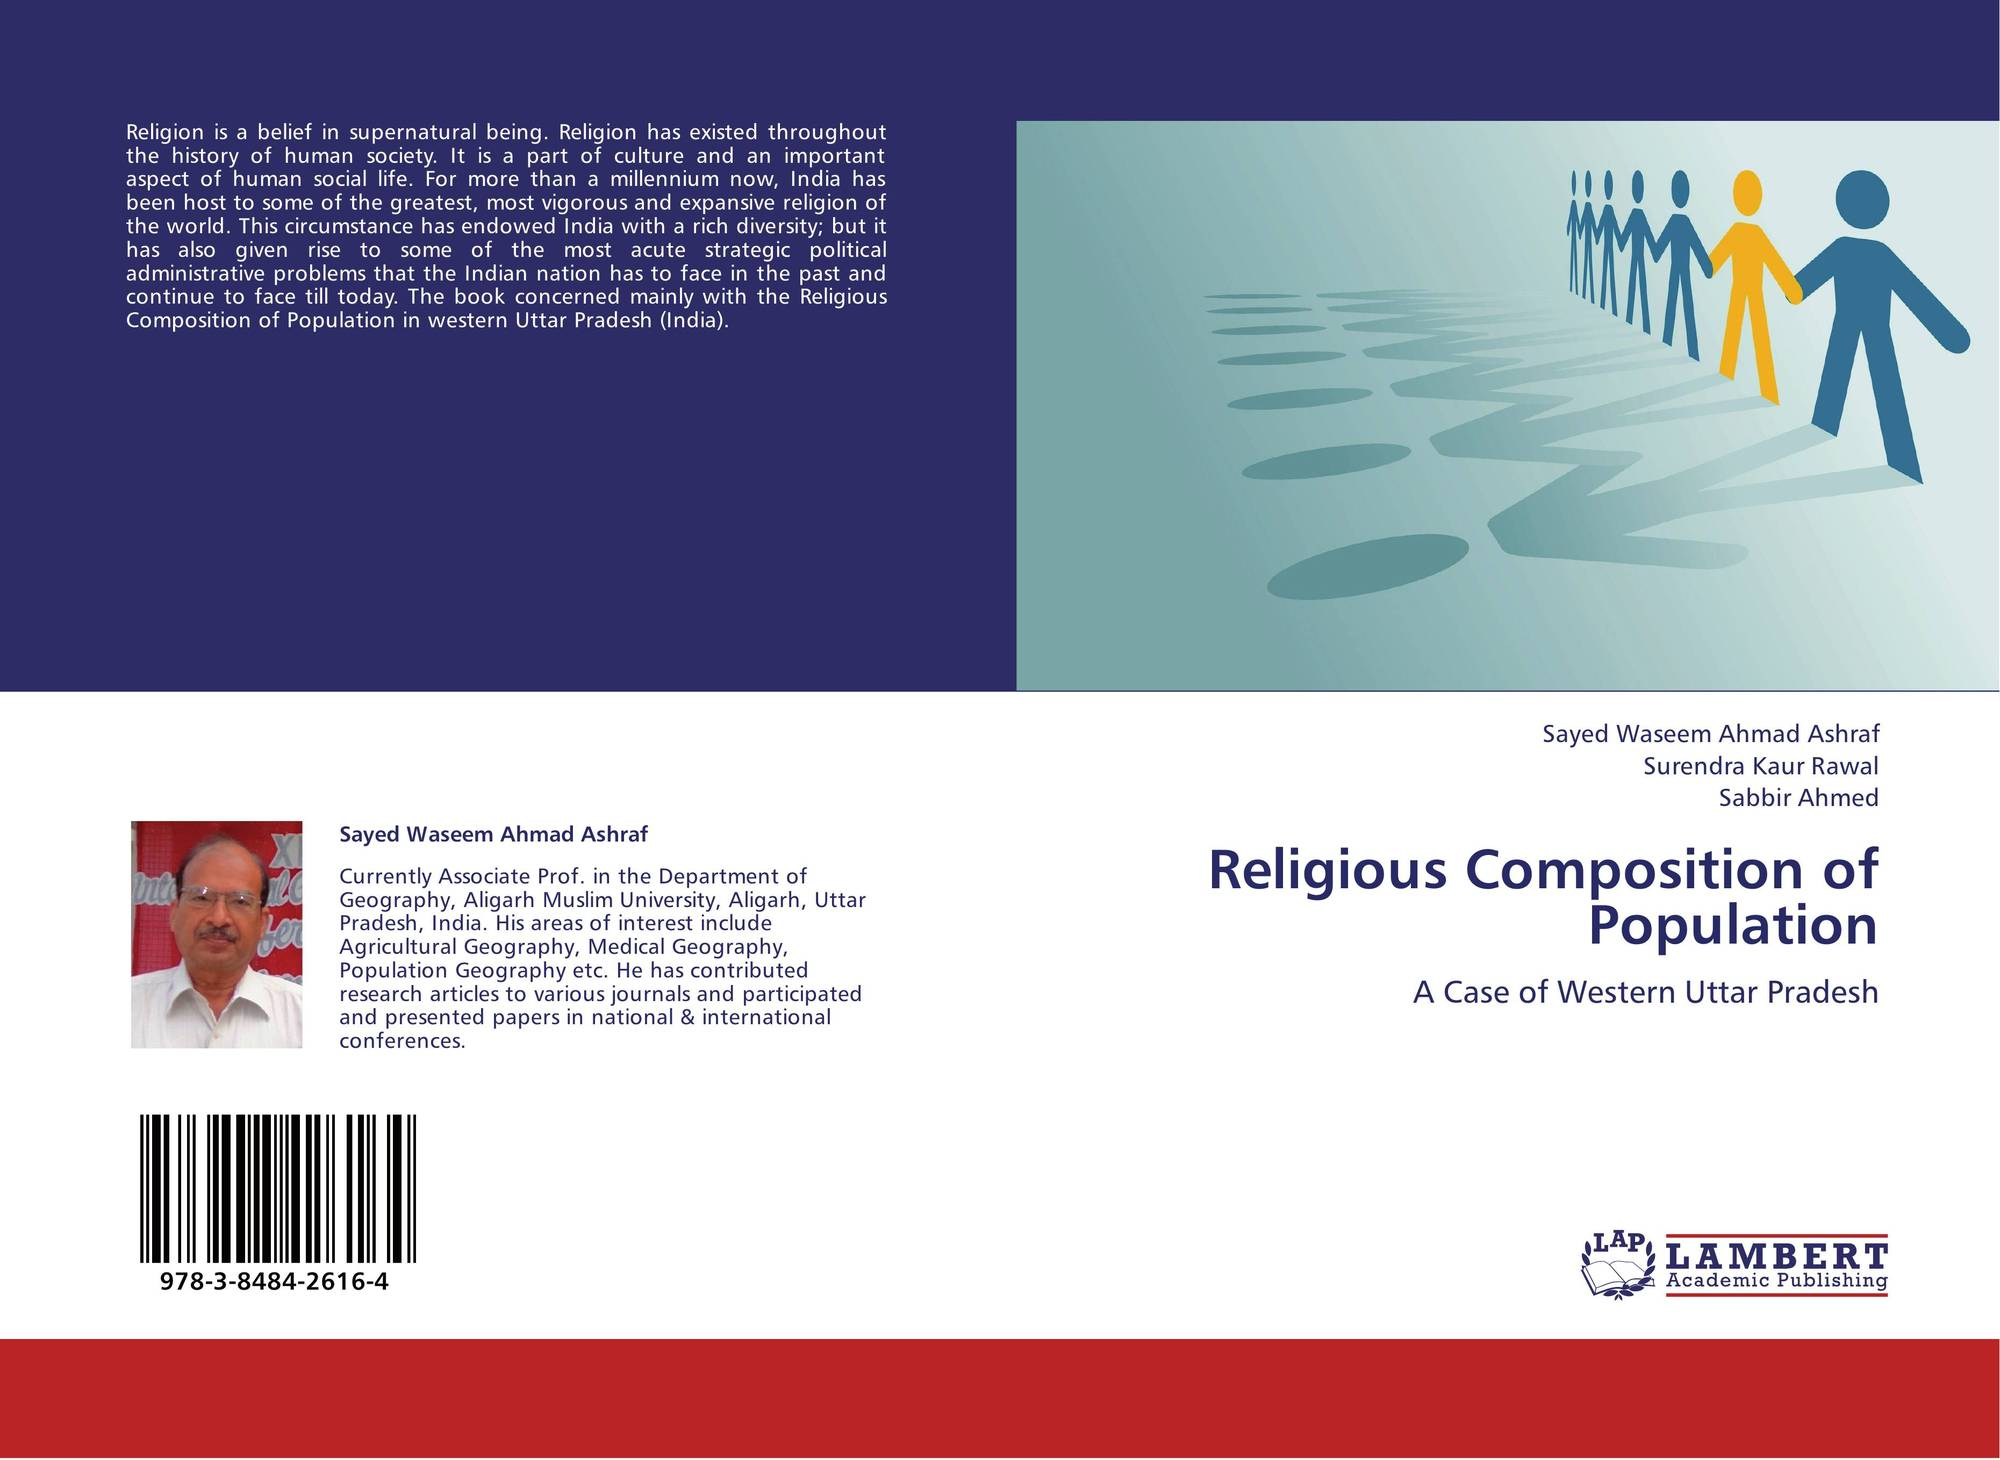 Religious Composition of Population, 978-3-8484-2616-4